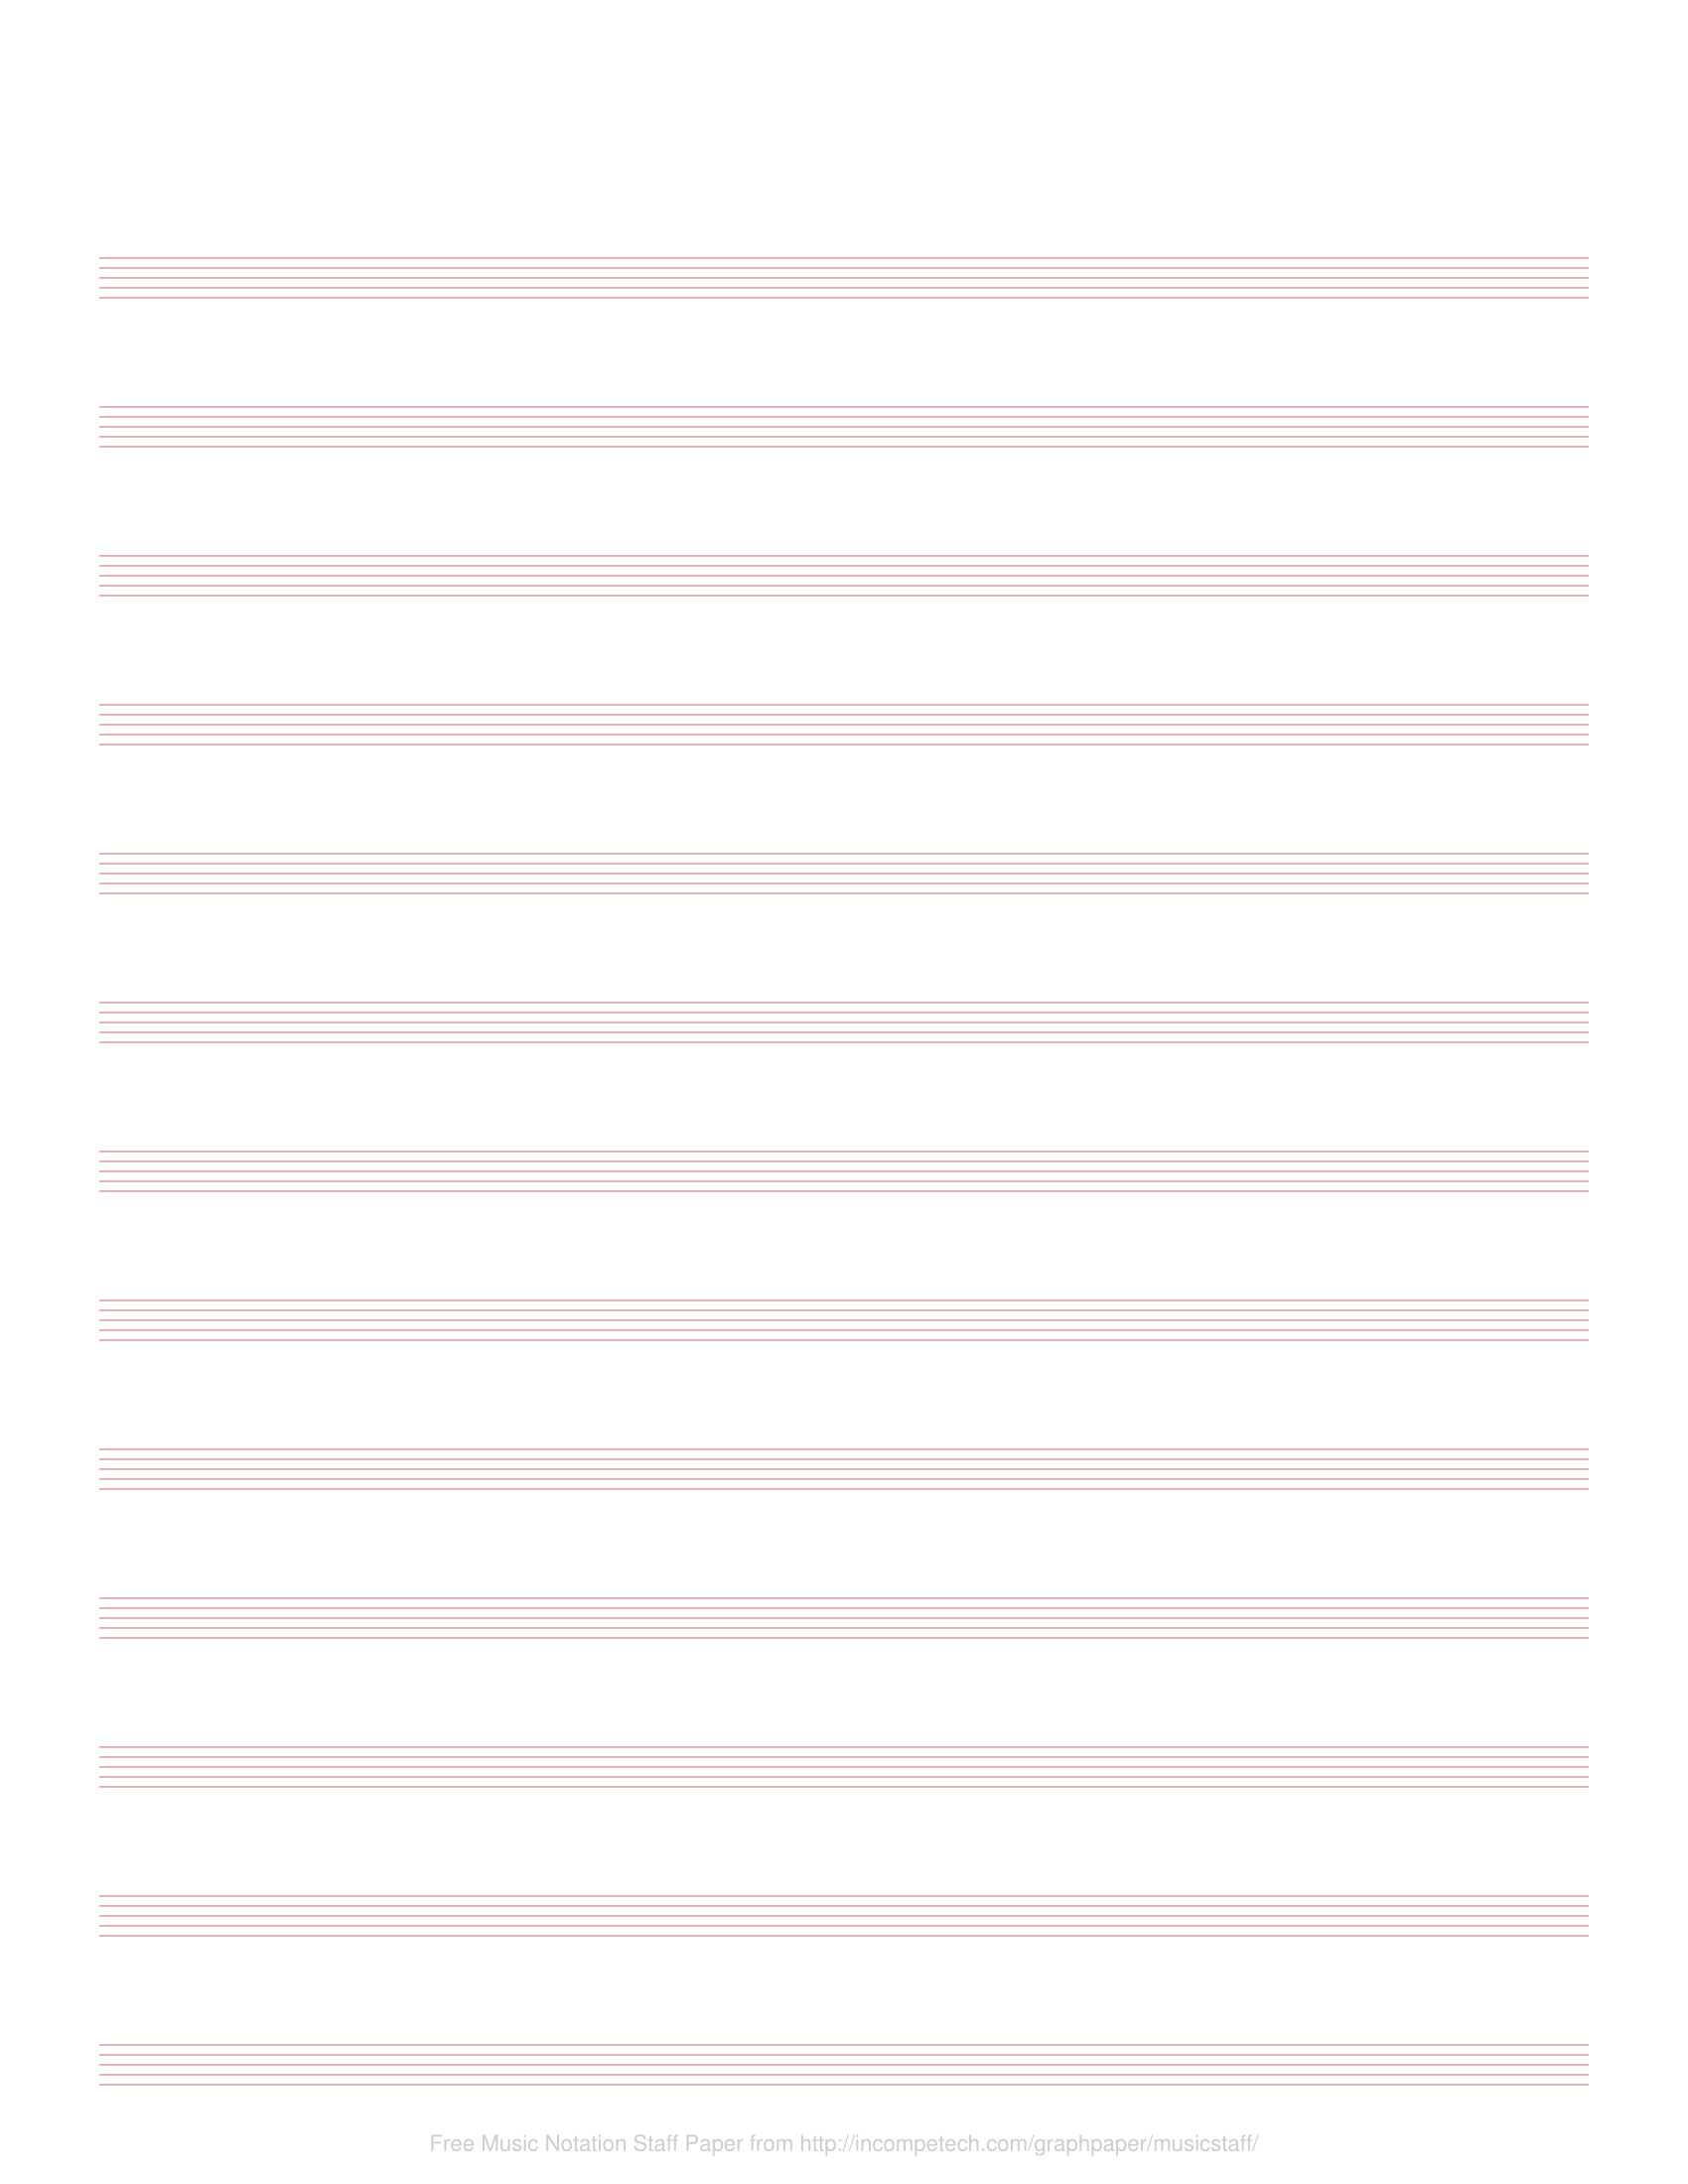 photo relating to Printable Staff Paper With Bar Lines titled Absolutely free On line Graph Paper / New music Notation